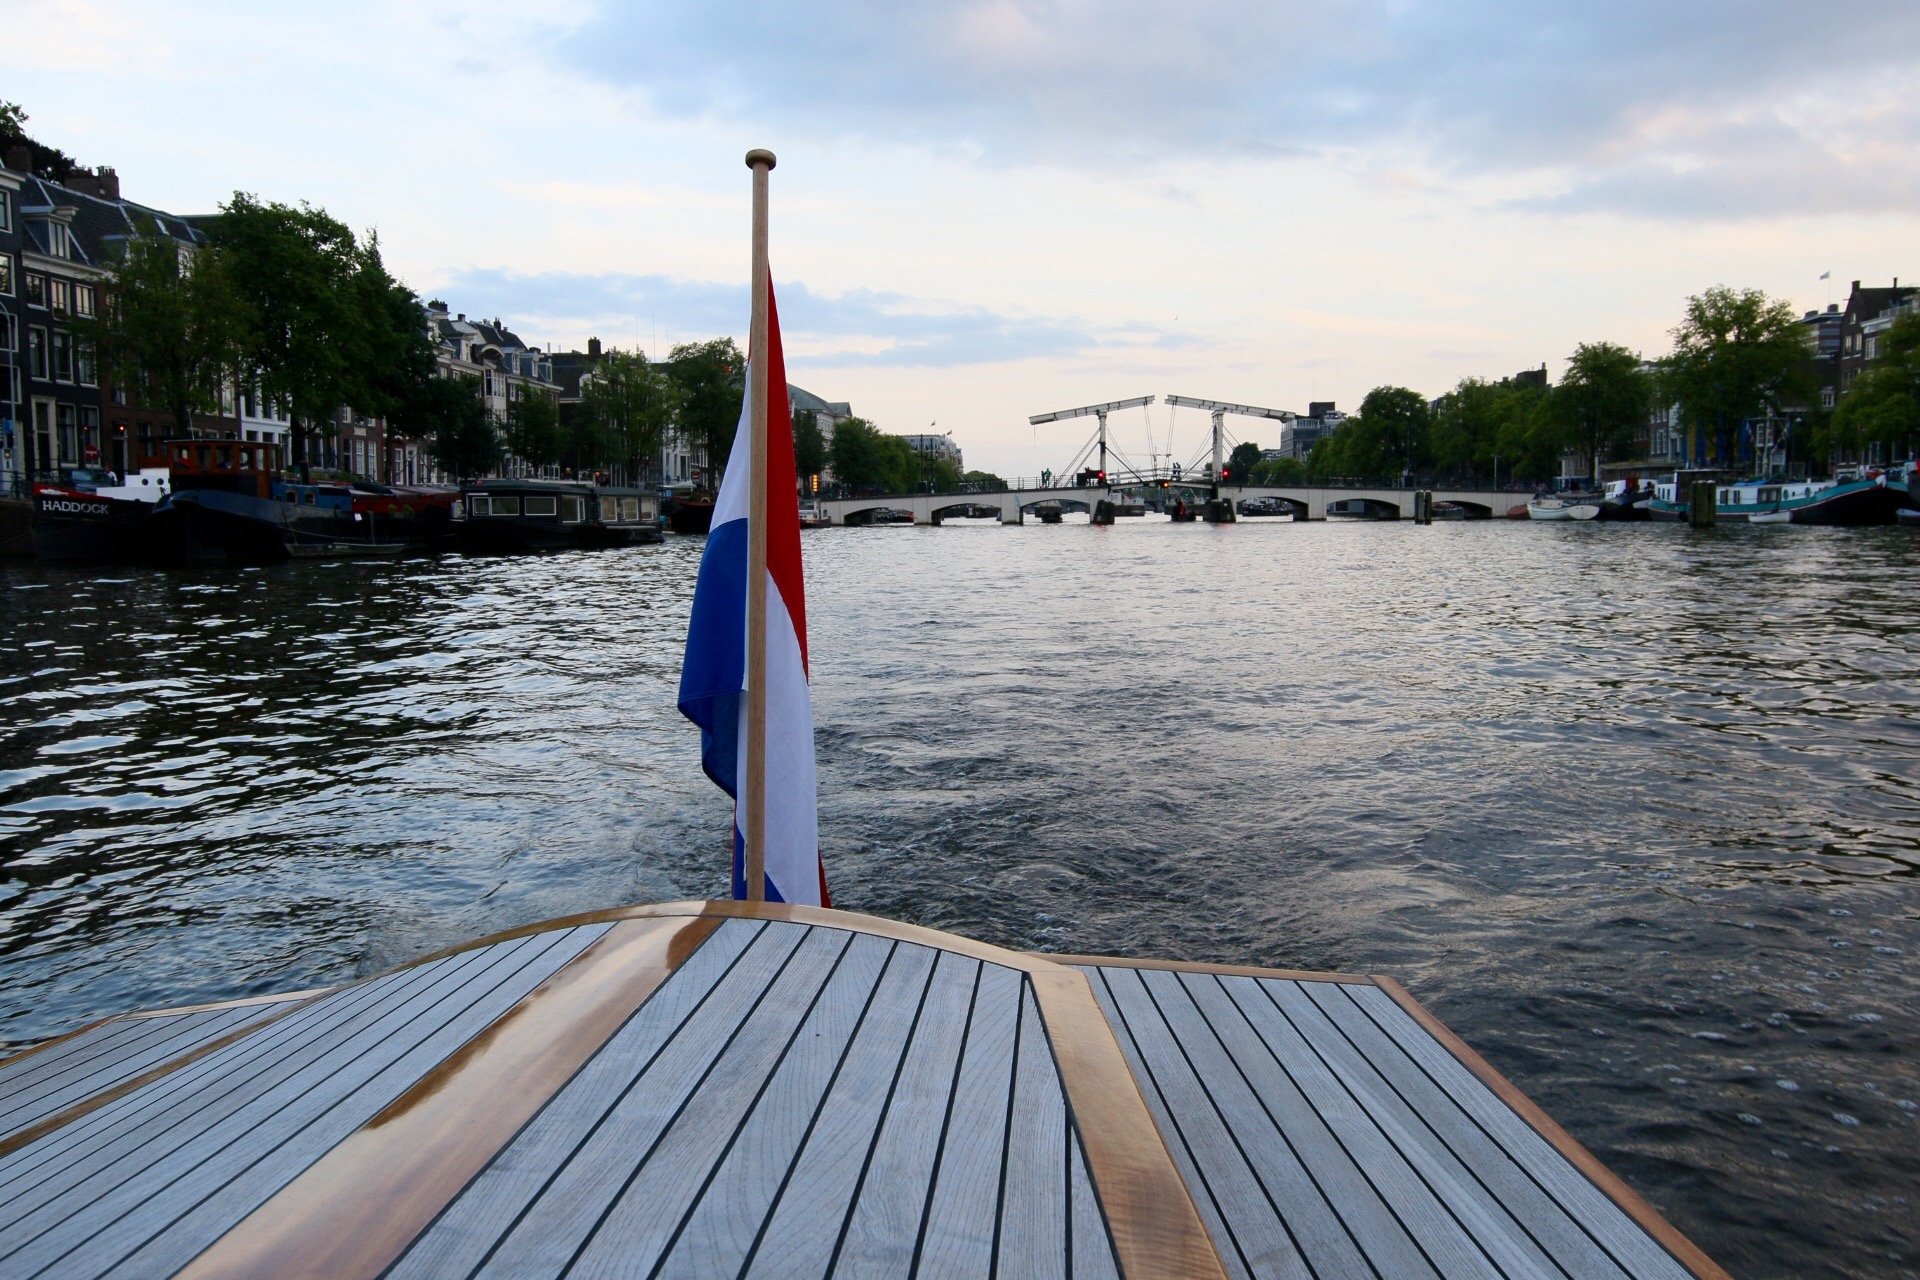 Welcome at Leemstar Amsterdam, for personal canal cruises. Leemstar provides in personal guided small boat canal tours. - foto 2